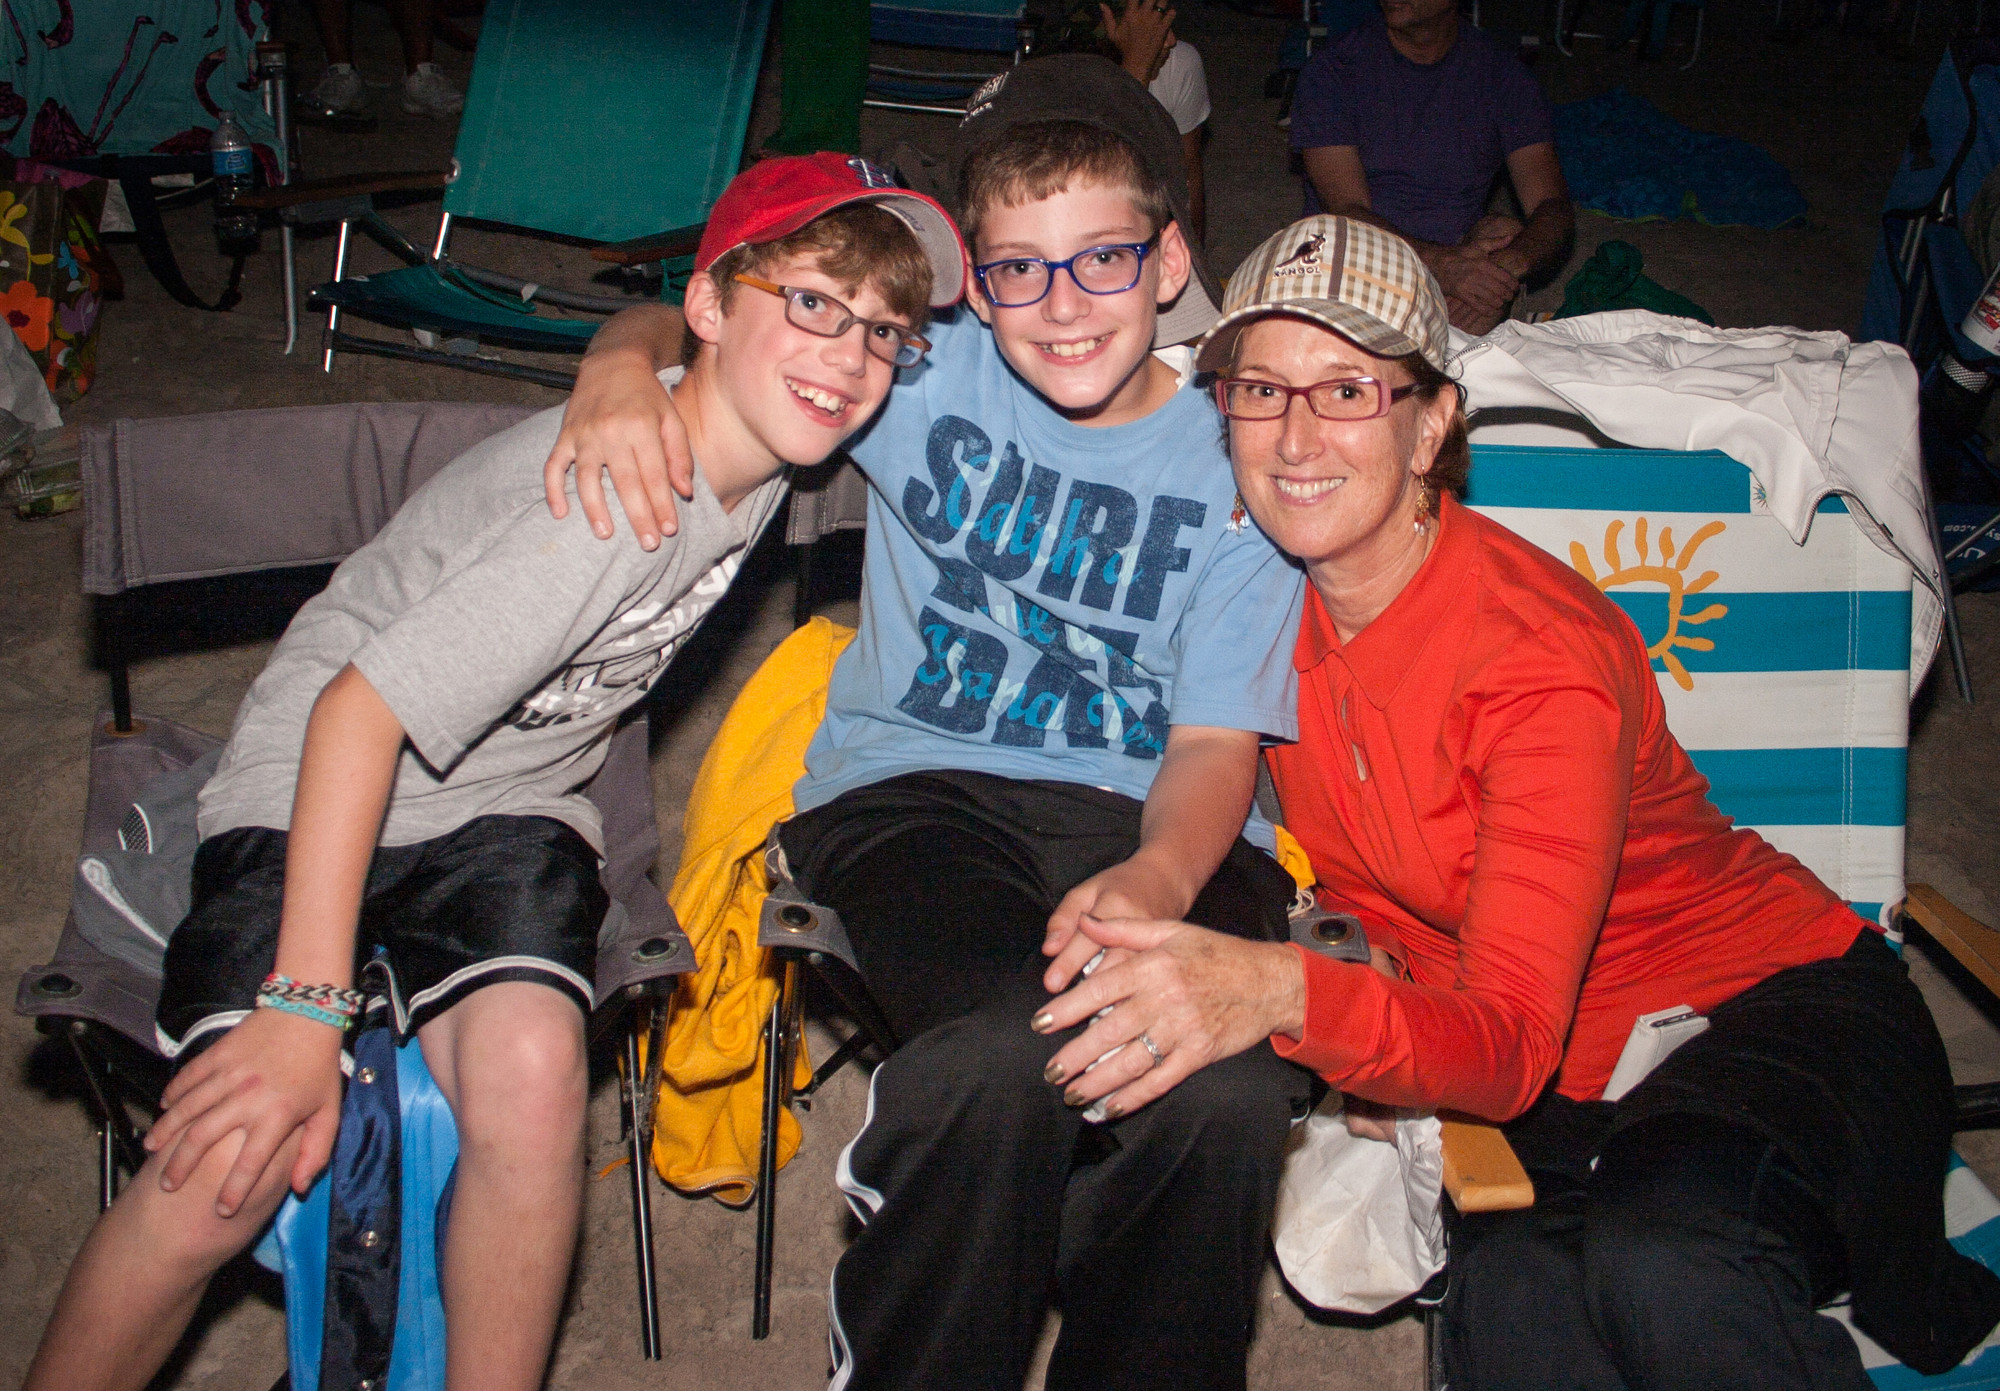 Twins Eitan and Ezar Libin, 11, and their grandmother, Sheryl Wyszkewski, turned out for the film festival's screenings on the beach.